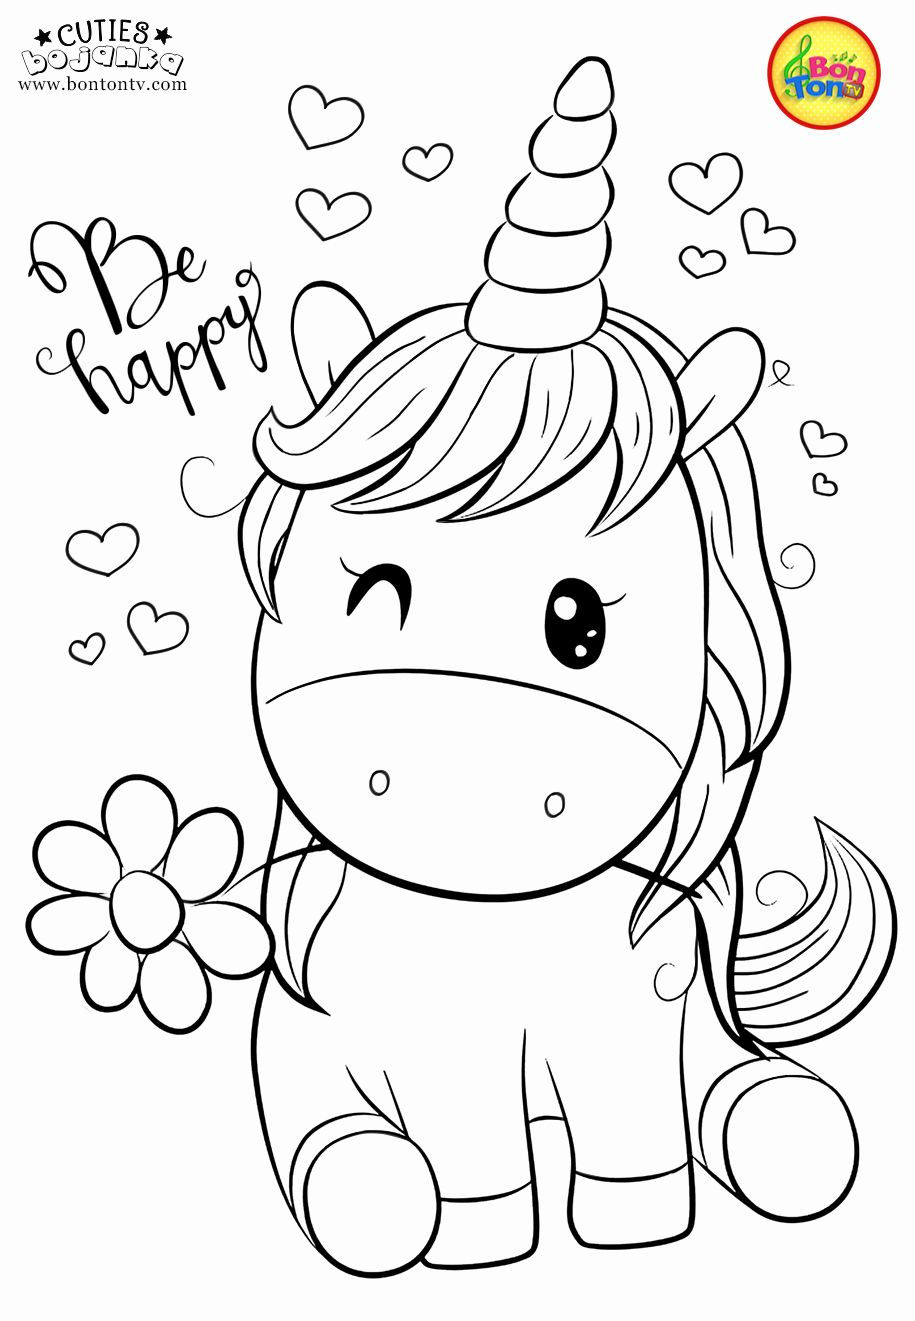 Baby Sloth Coloring Pages Unique Coloring Pages Artofit Kids Coloring Books Unicorn Coloring Pages Kids Colouring Printables